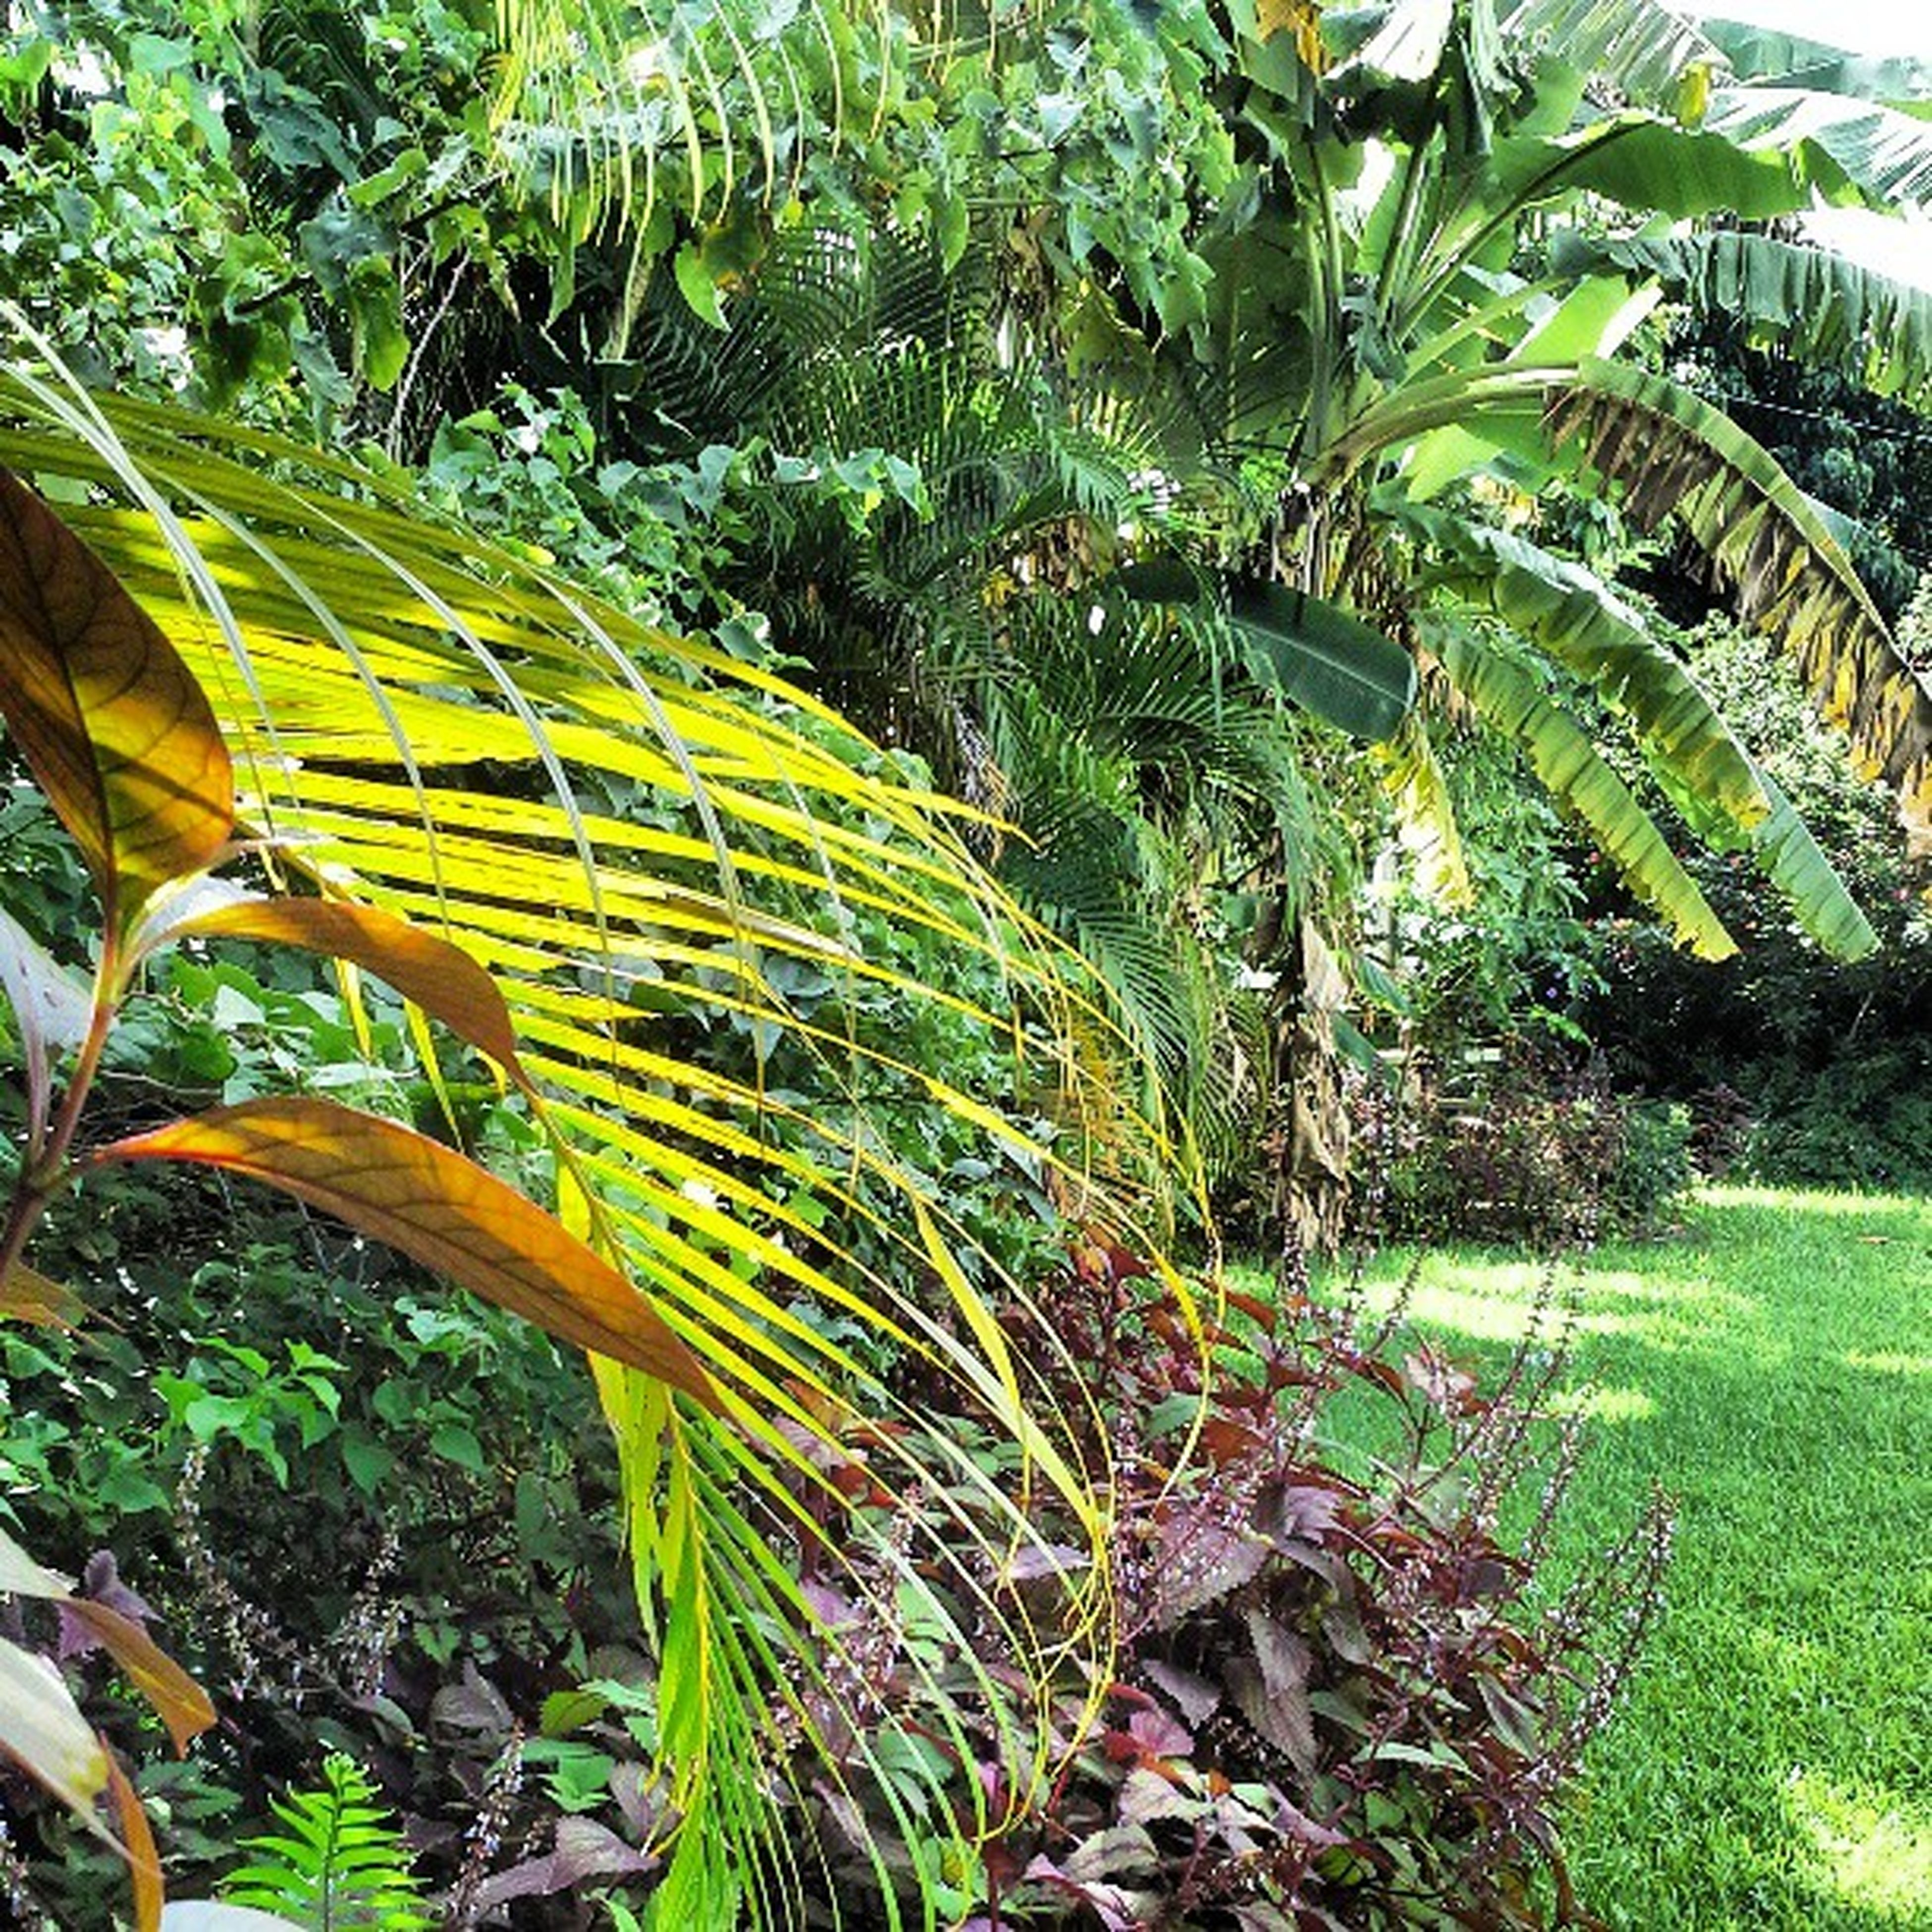 growth, green color, plant, grass, field, tree, nature, tranquility, growing, palm tree, leaf, beauty in nature, agriculture, green, day, outdoors, rural scene, tranquil scene, sunlight, lush foliage